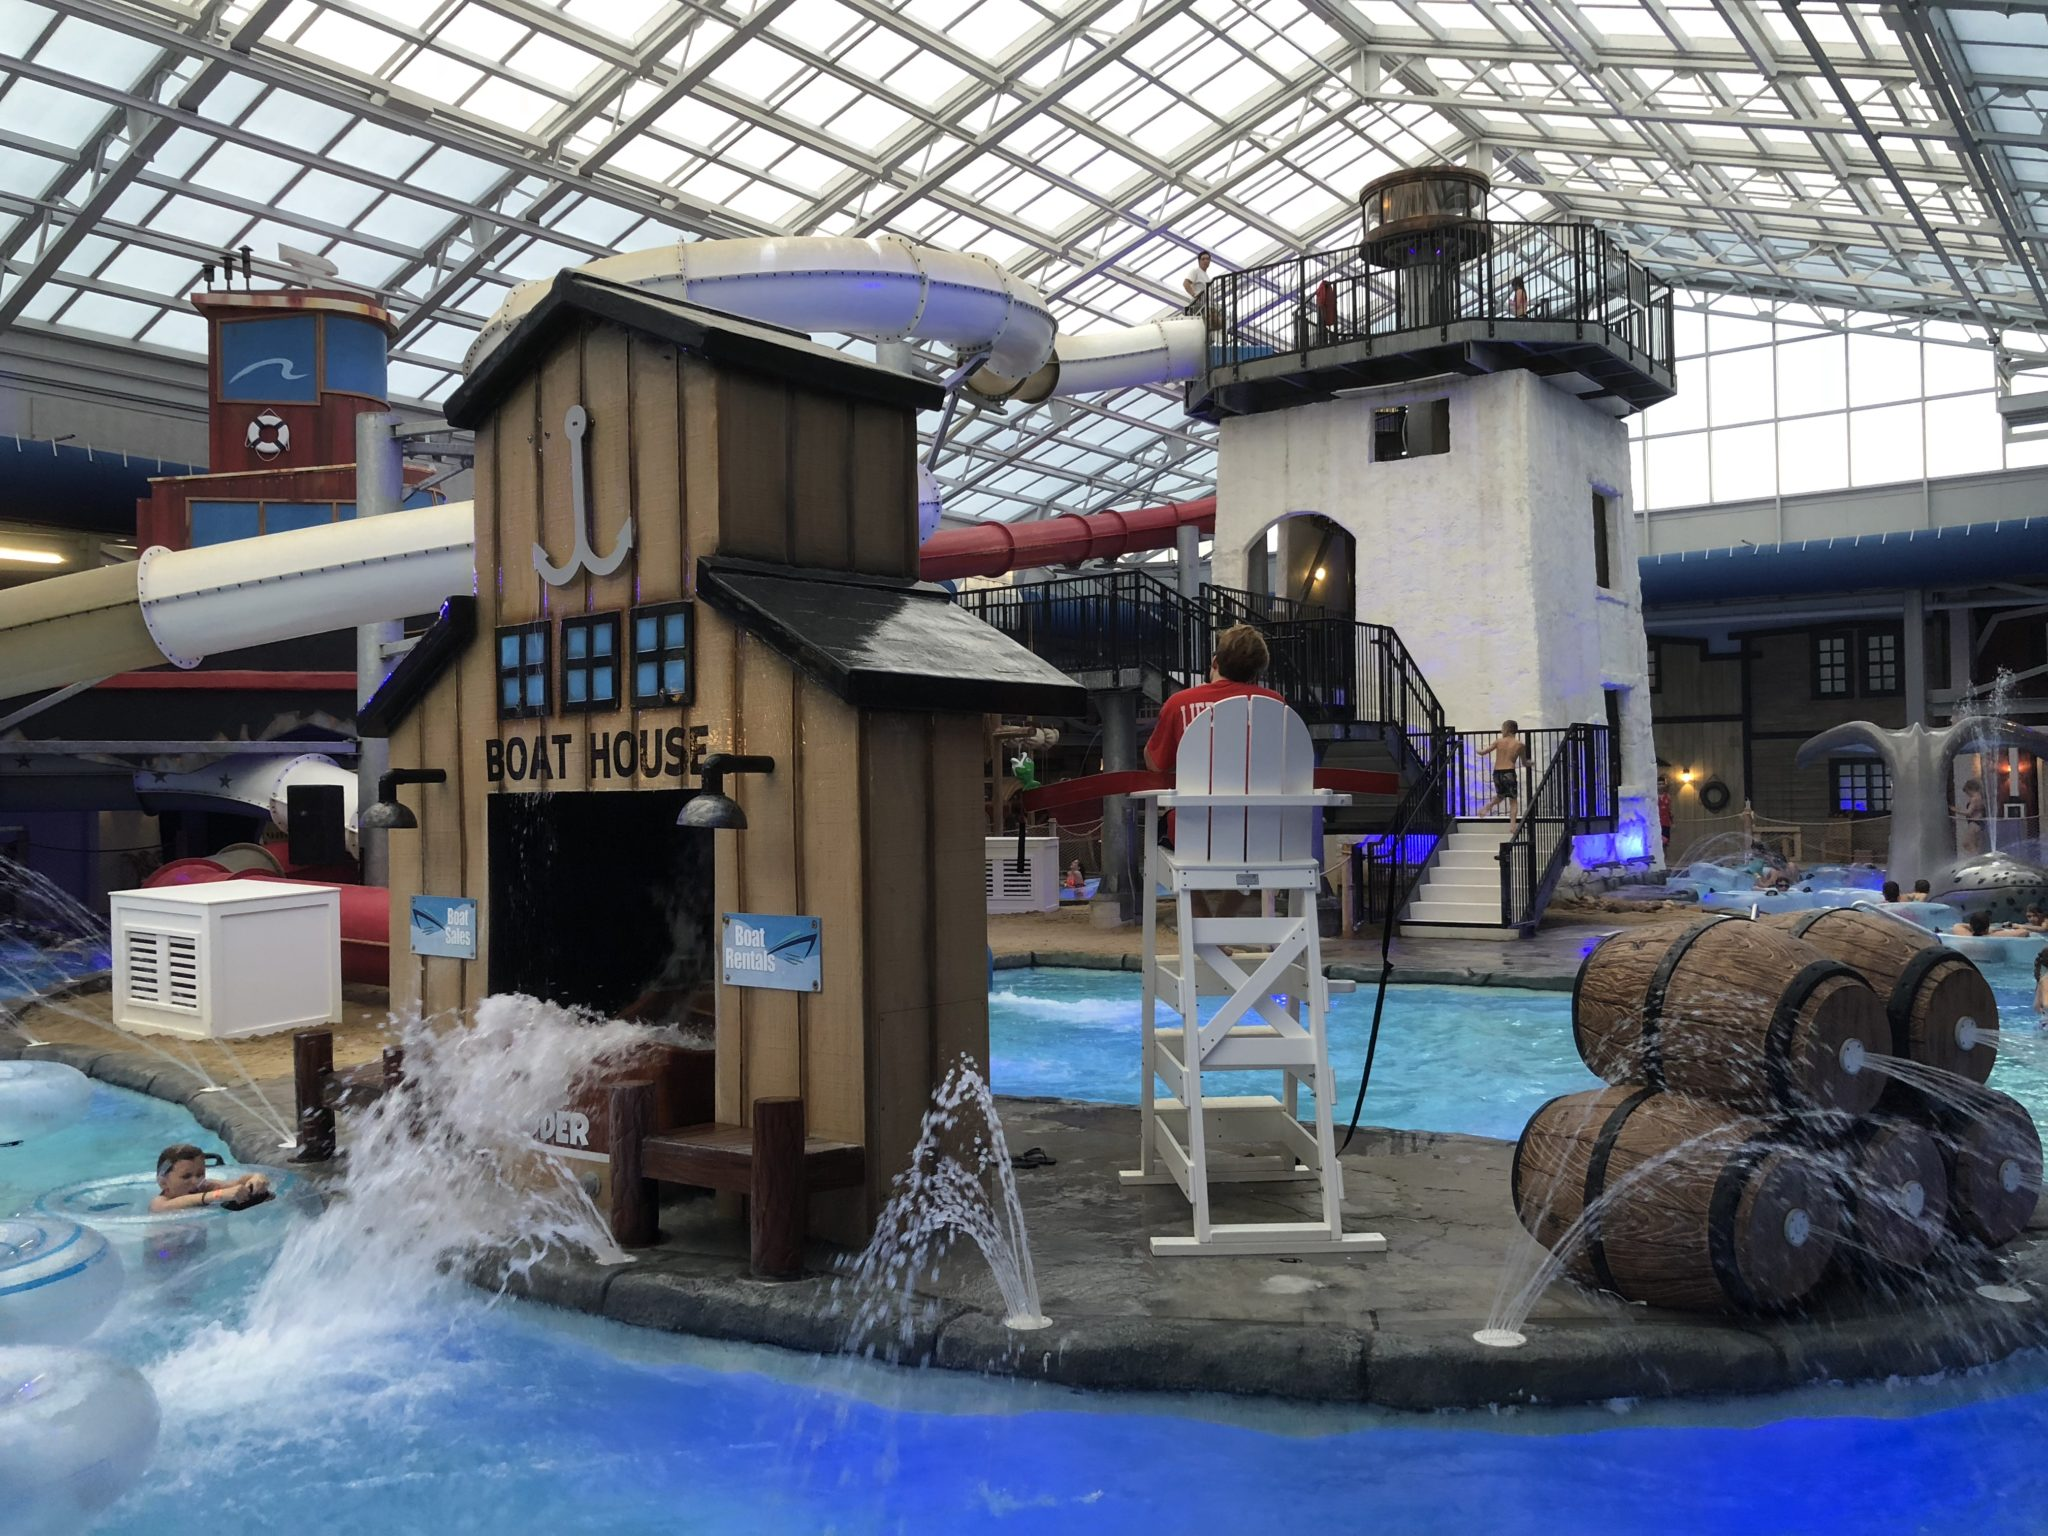 The Cape Codder has an indoor water park, a wide variety of room options, several restaurants, a full service spa and more. Everything you need to enjoy your getaway is located all under one roof!